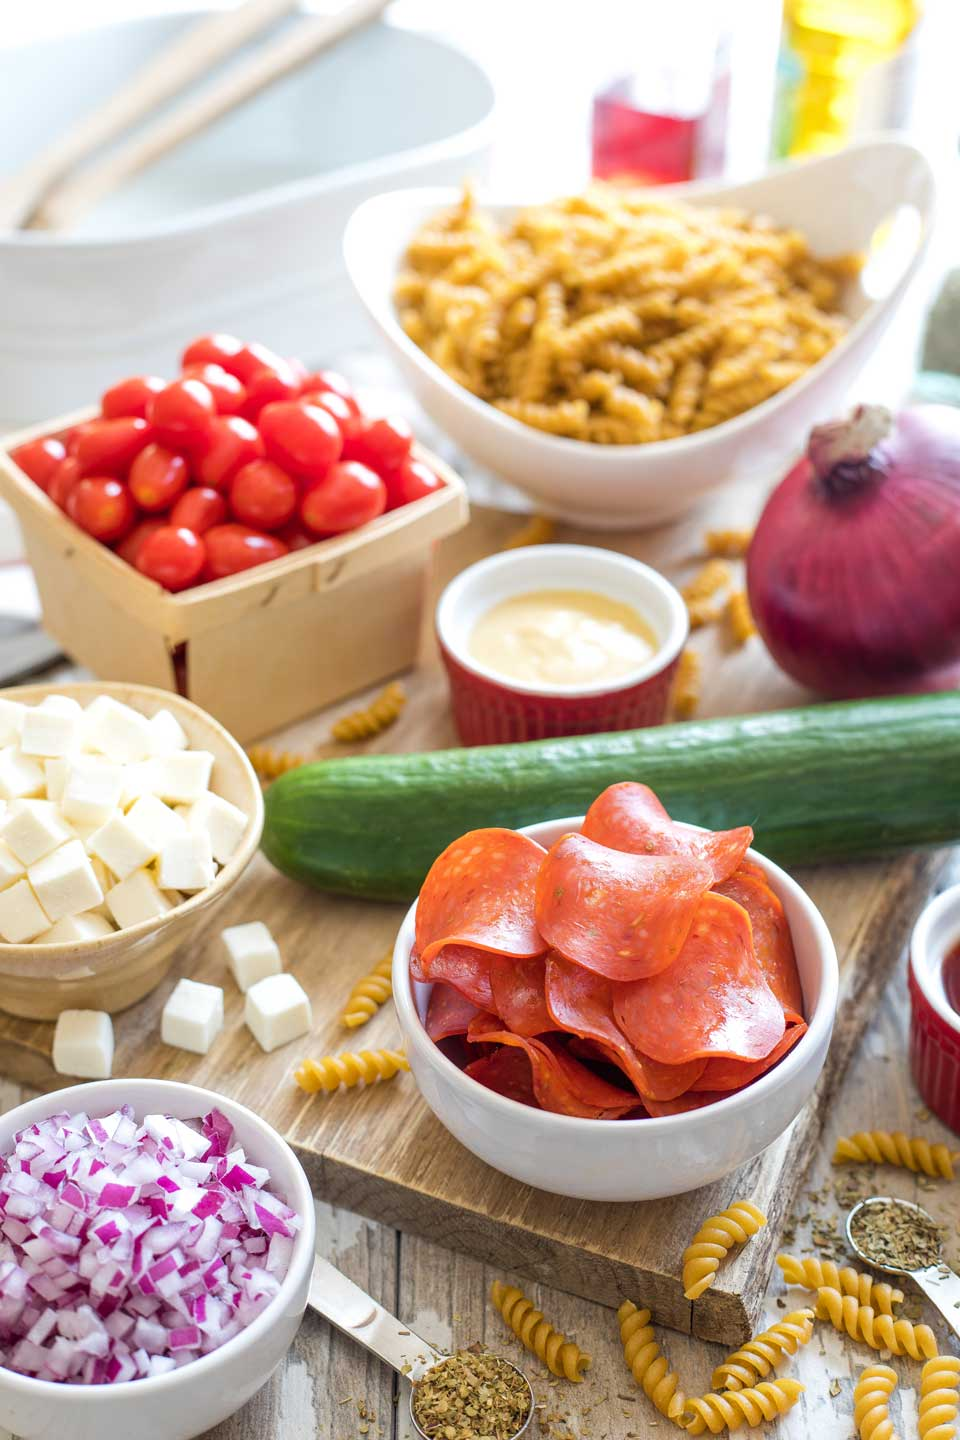 Ingredients for the pasta salad arranged in bowls and spread on a cutting board.